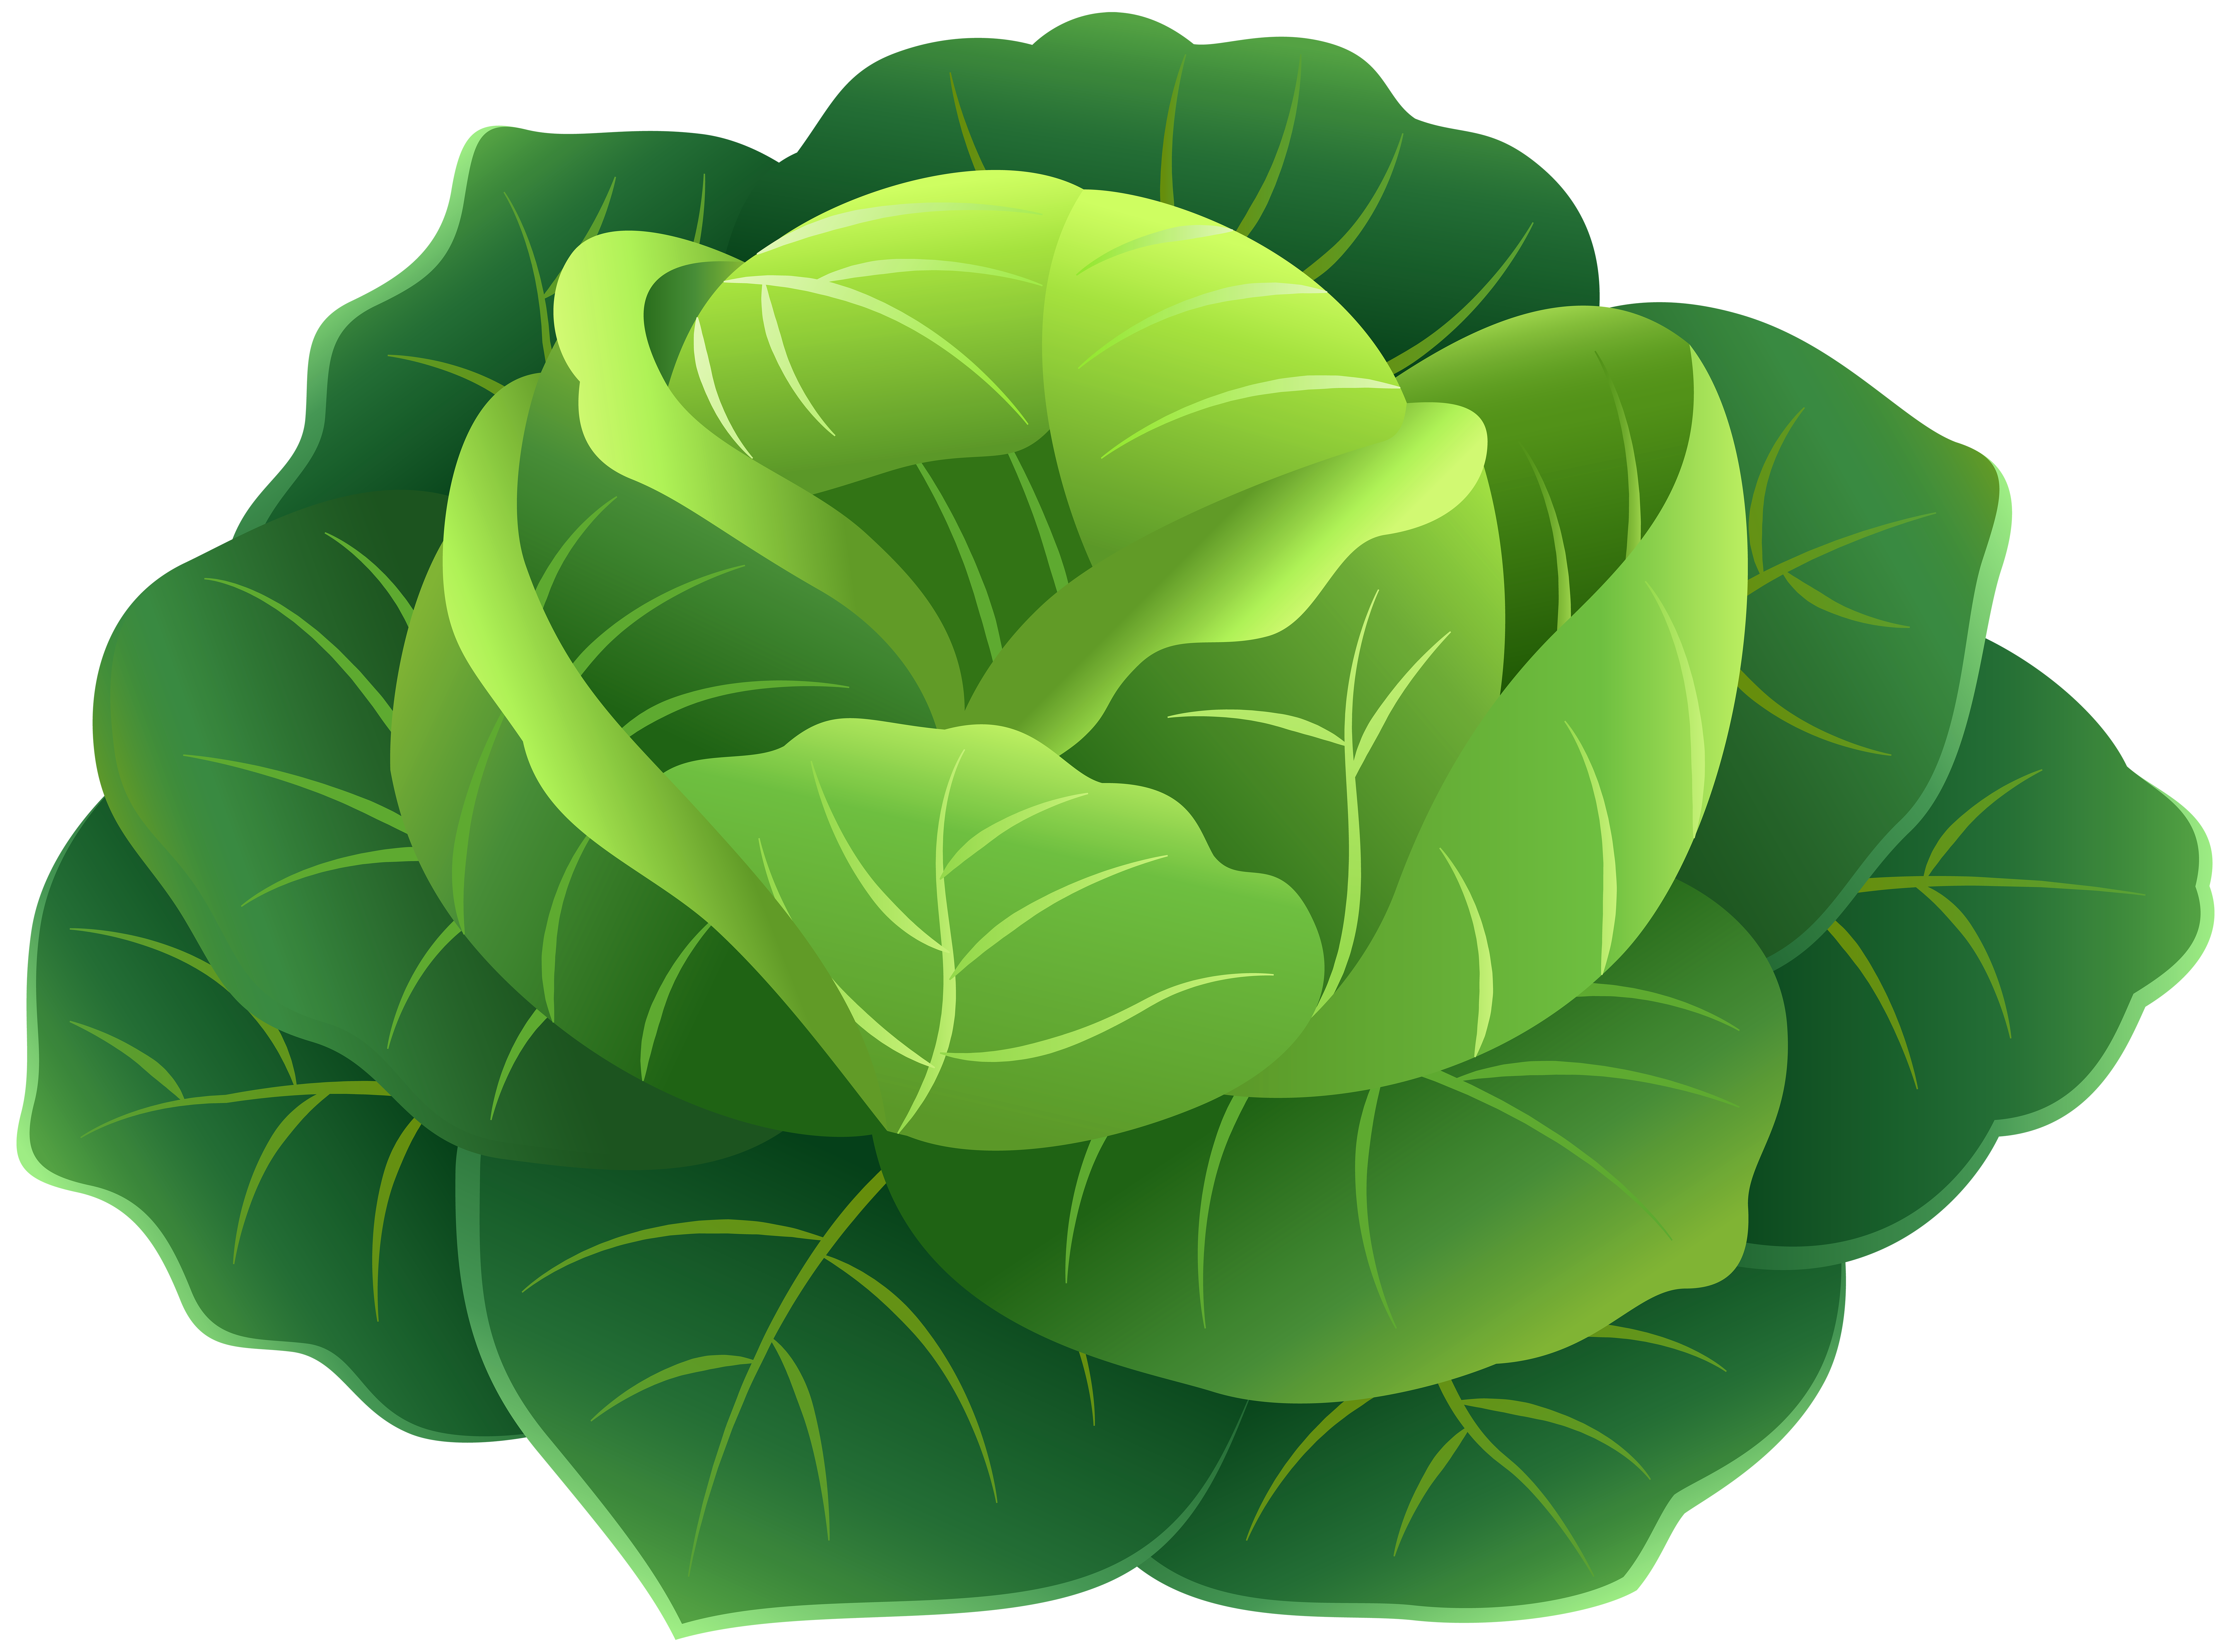 png transparent library Png clip art image. Cabbage clipart.